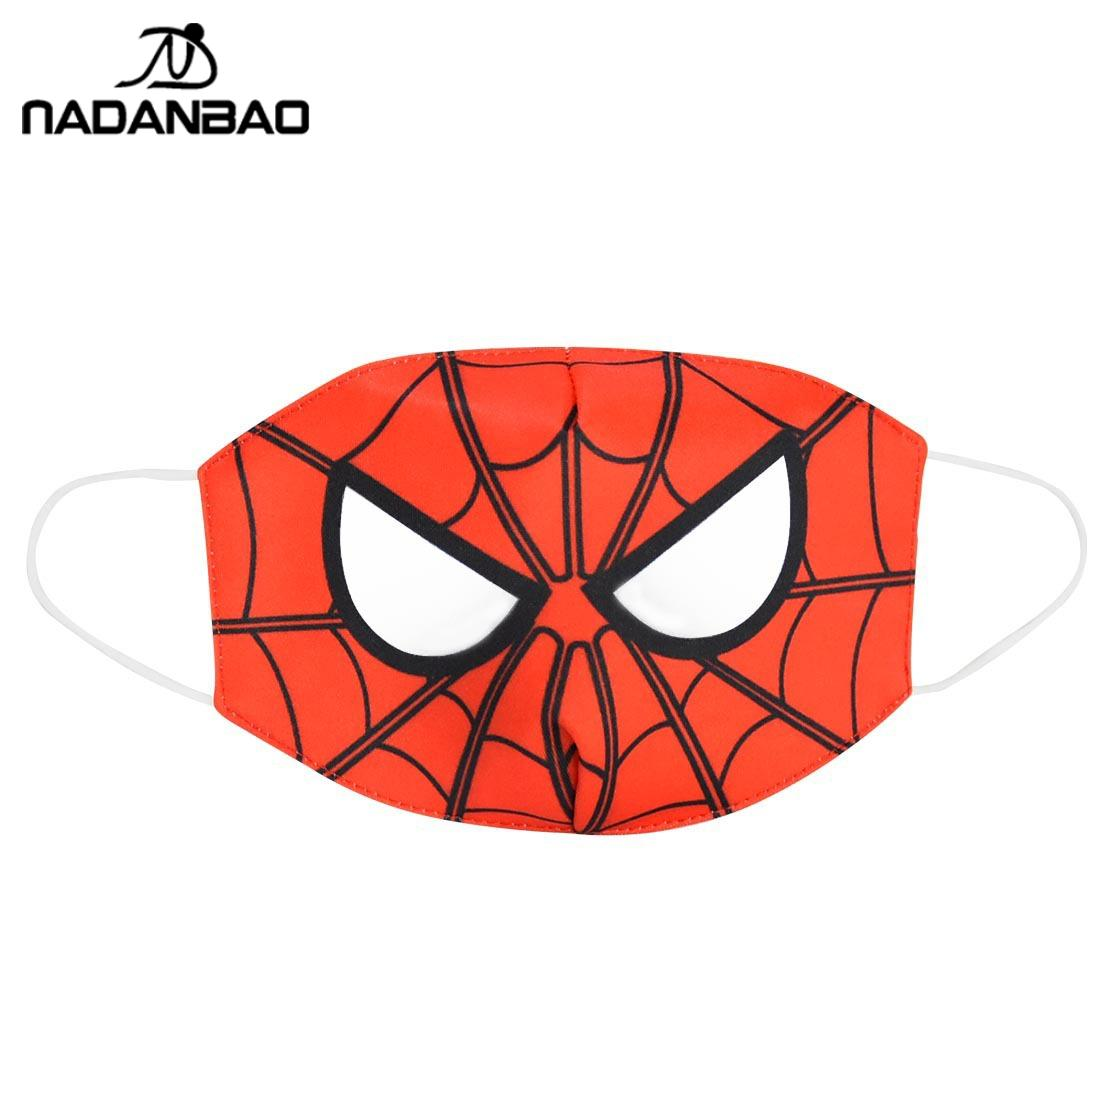 NADANBAO Cute Children's Face Mask Print Spider Man Mask Cotton Cute Cosplay Mouth Cover Reusable Face-masks Dust Mask Washable